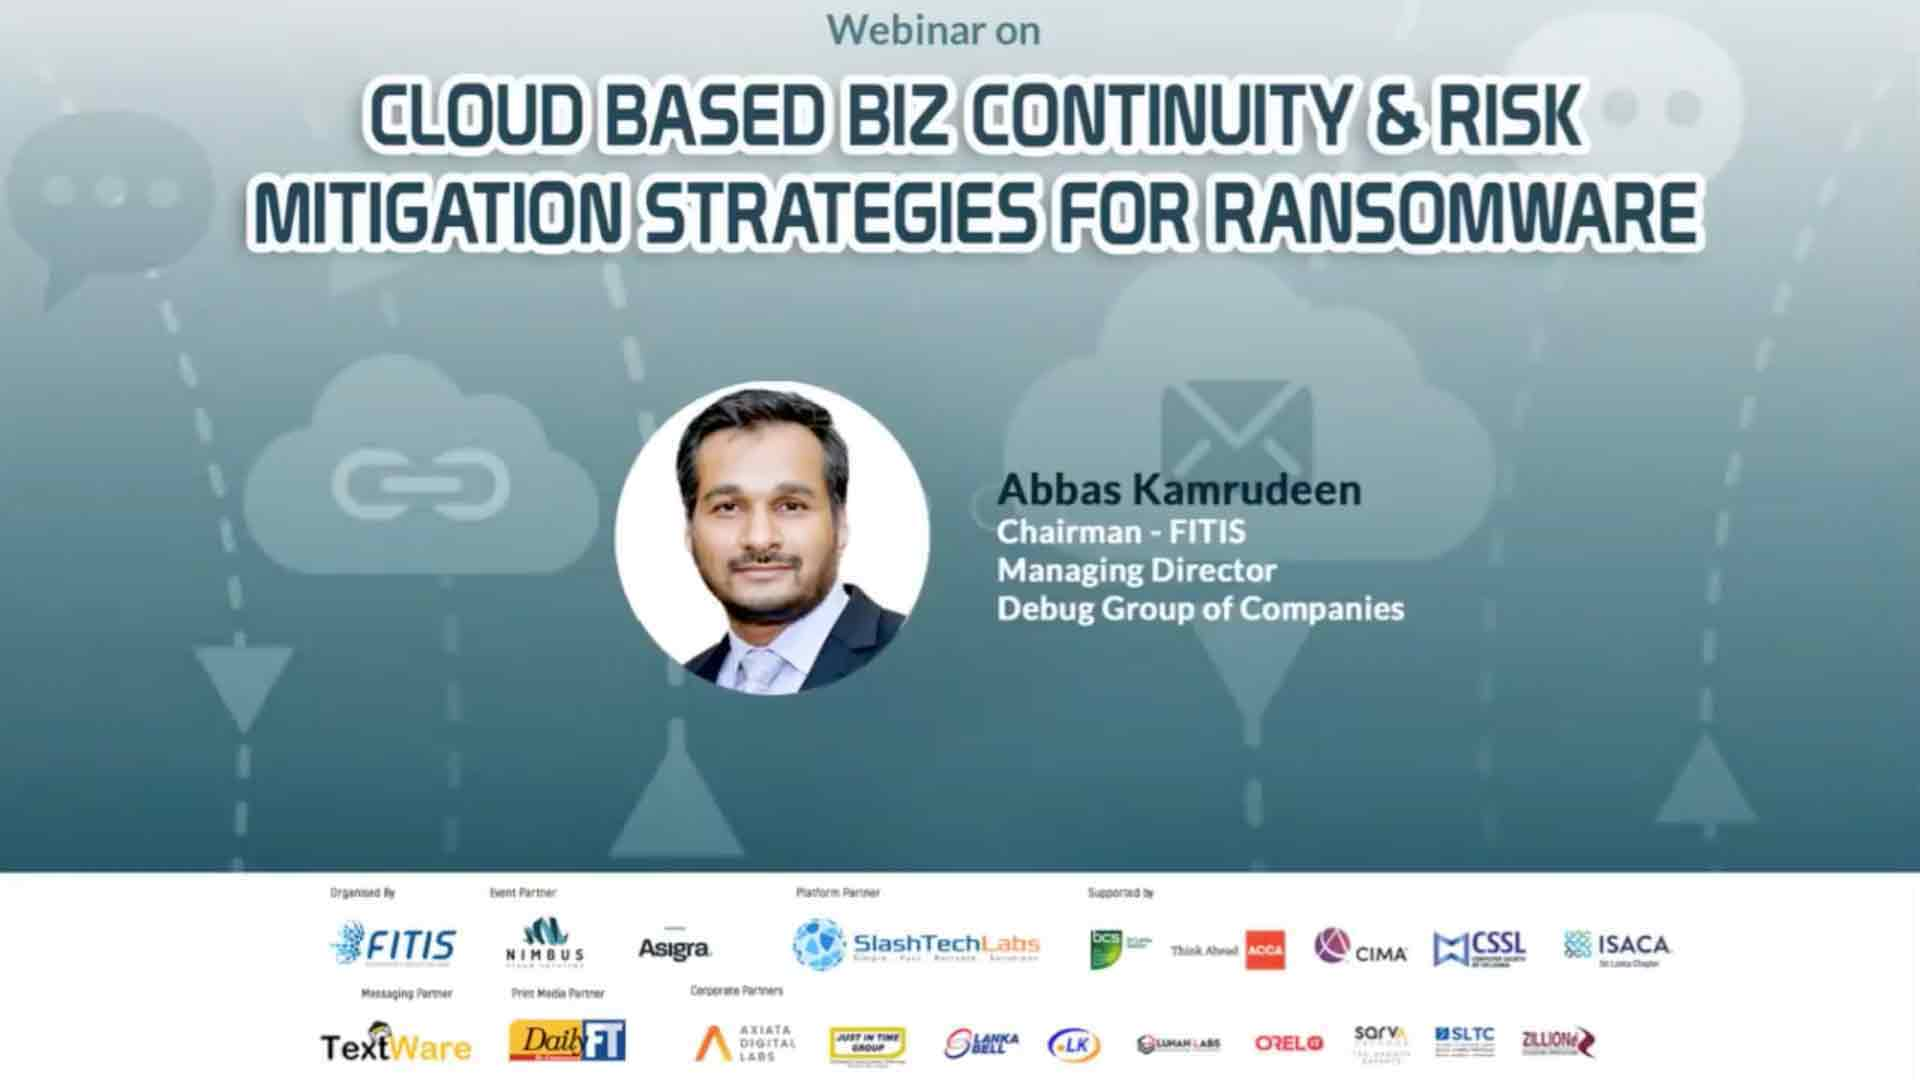 Cloud Based Business Continuity & Risk Mitigation Strategies for Ransomware